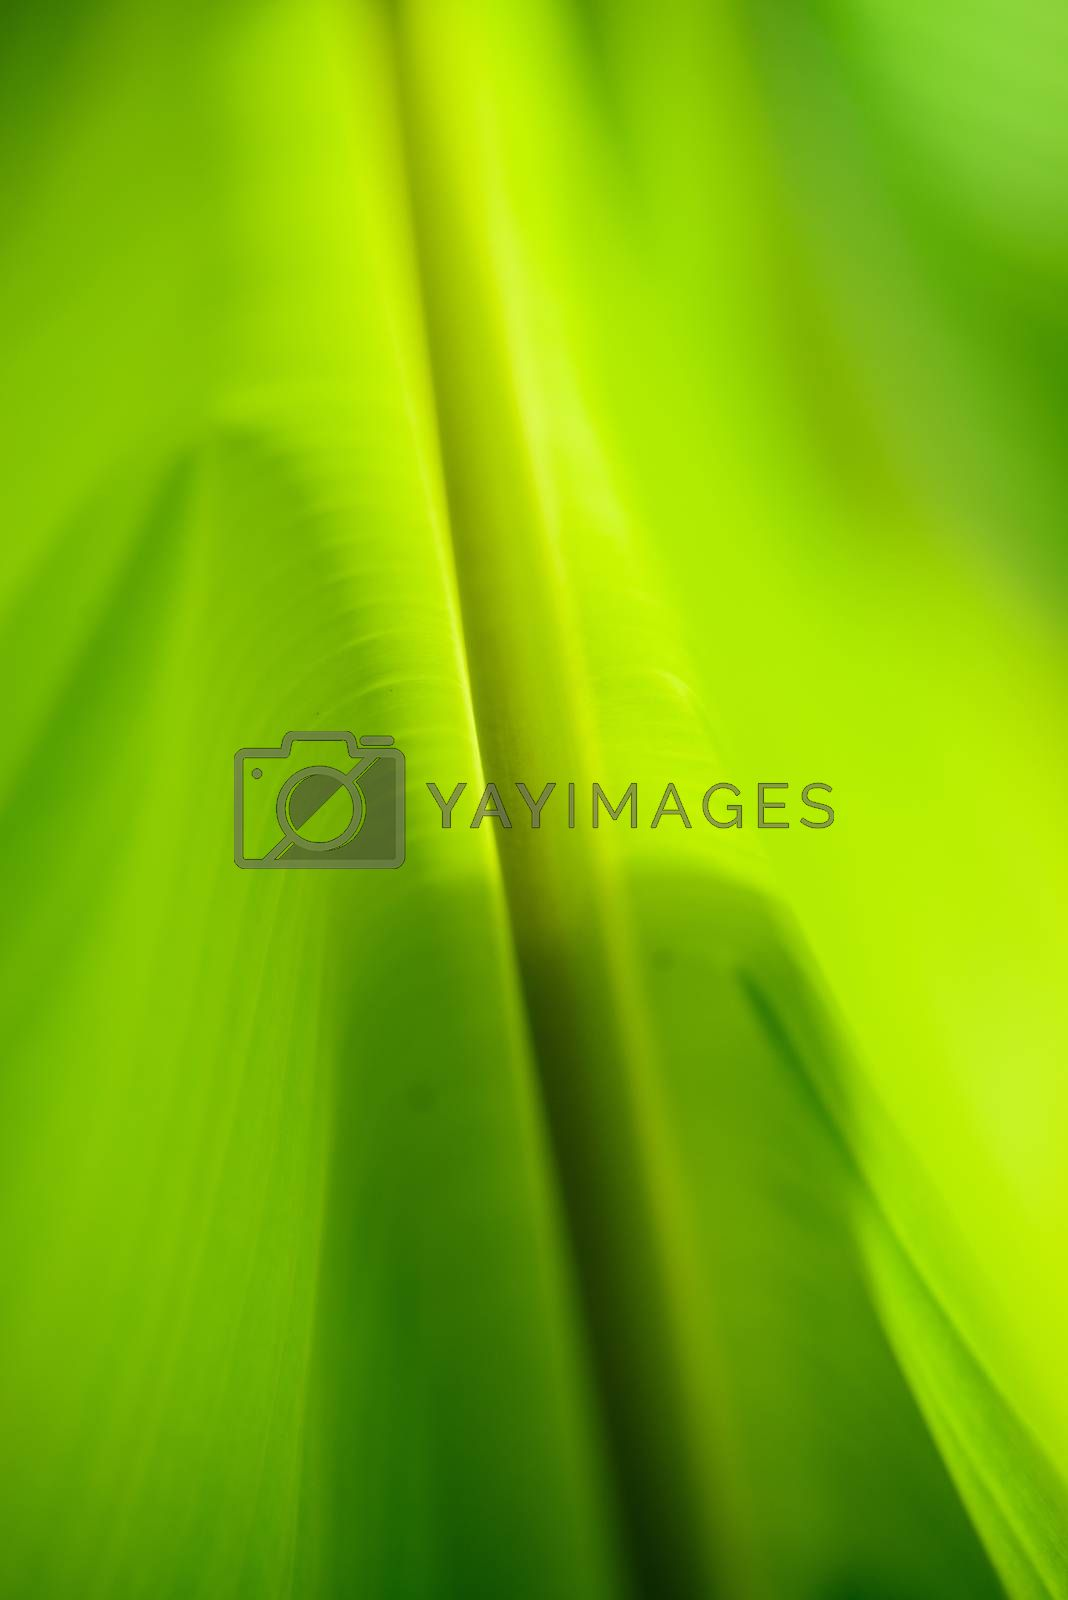 Banana leaves,Soft focus by jakgree